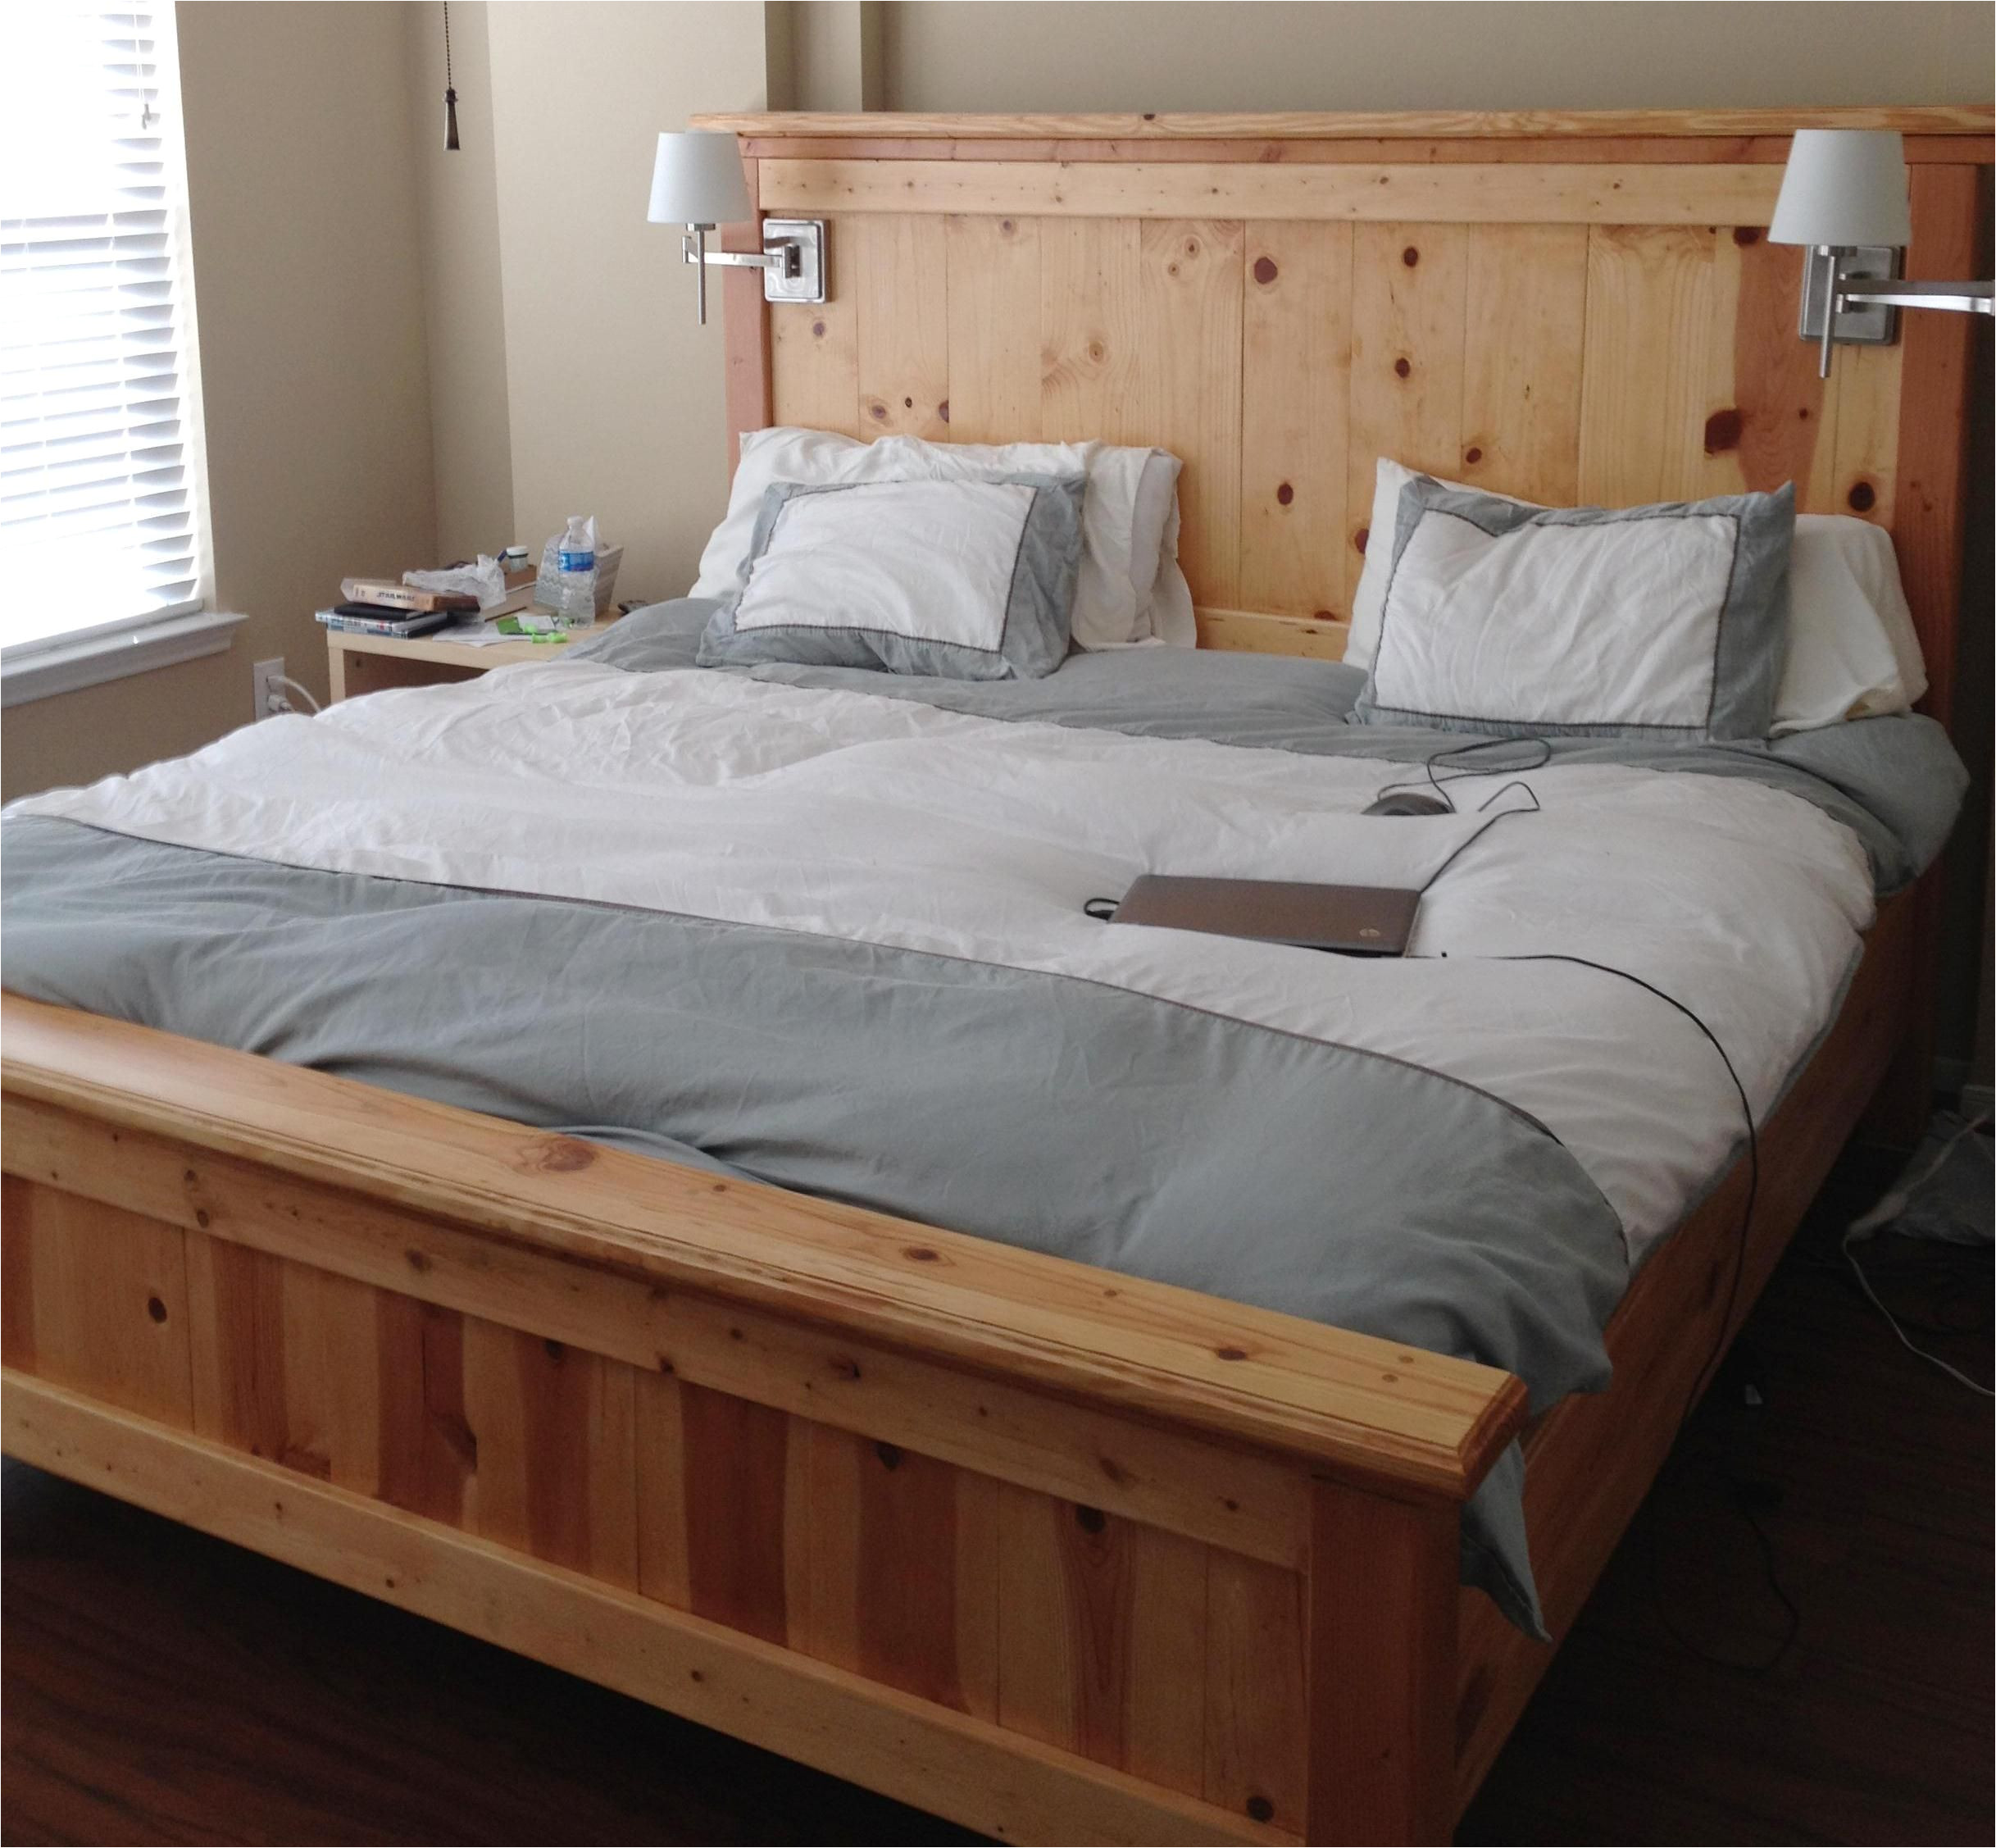 bed frame blueprints free farmhouse bed king do it yourself home projects from ana white